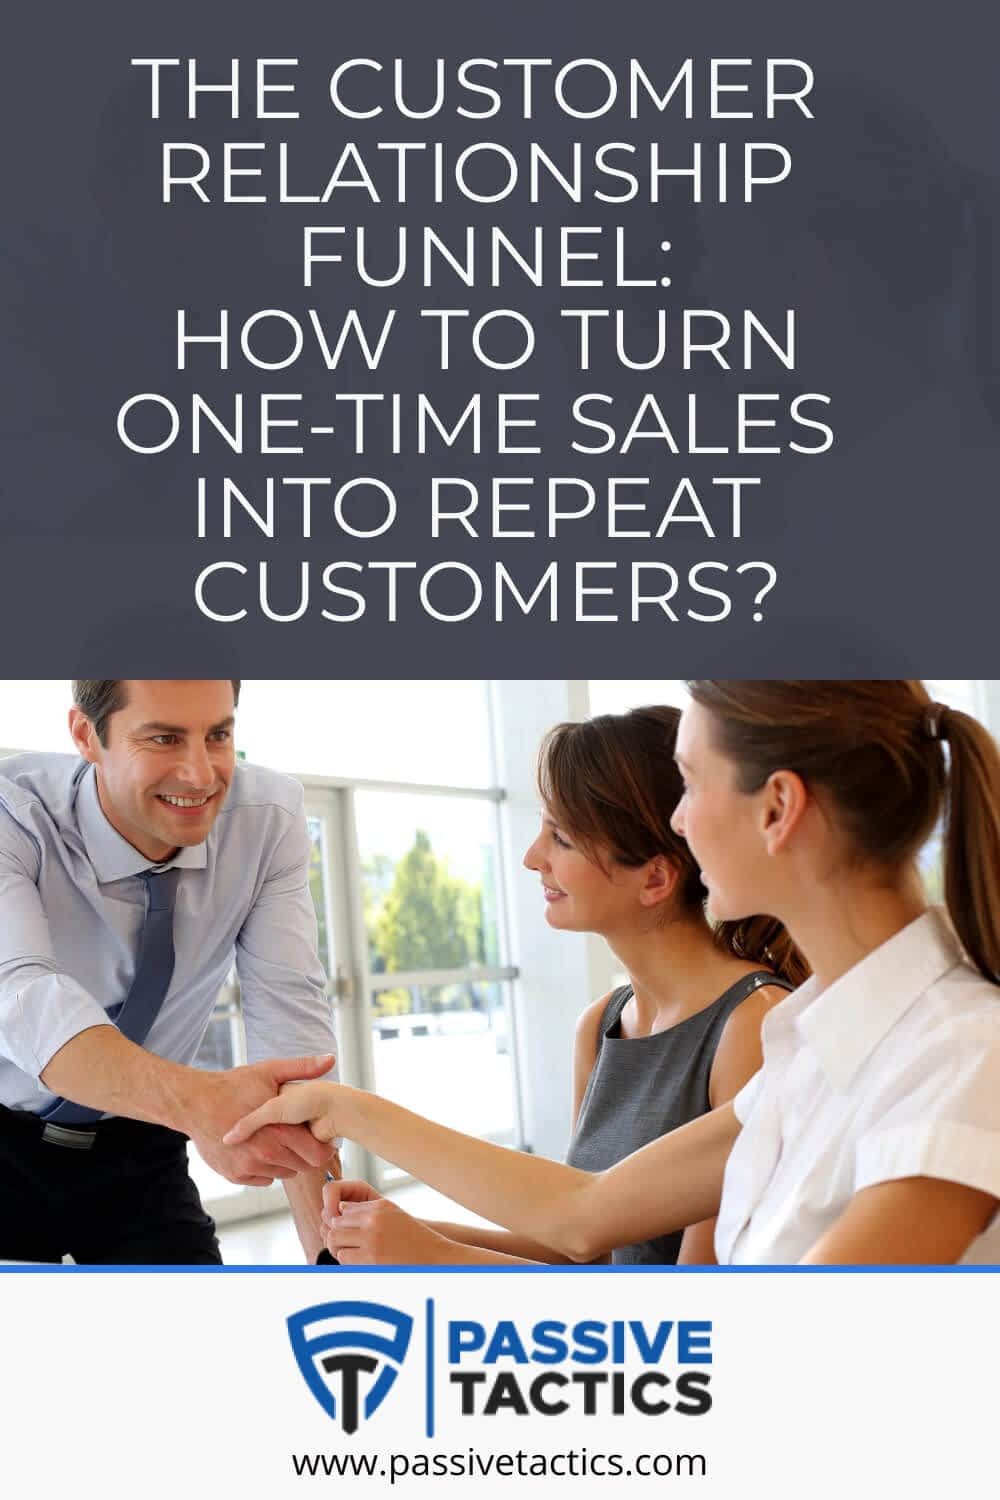 The Customer Relationship Funnel: How to Turn One-Time Sales Into Repeat Customers